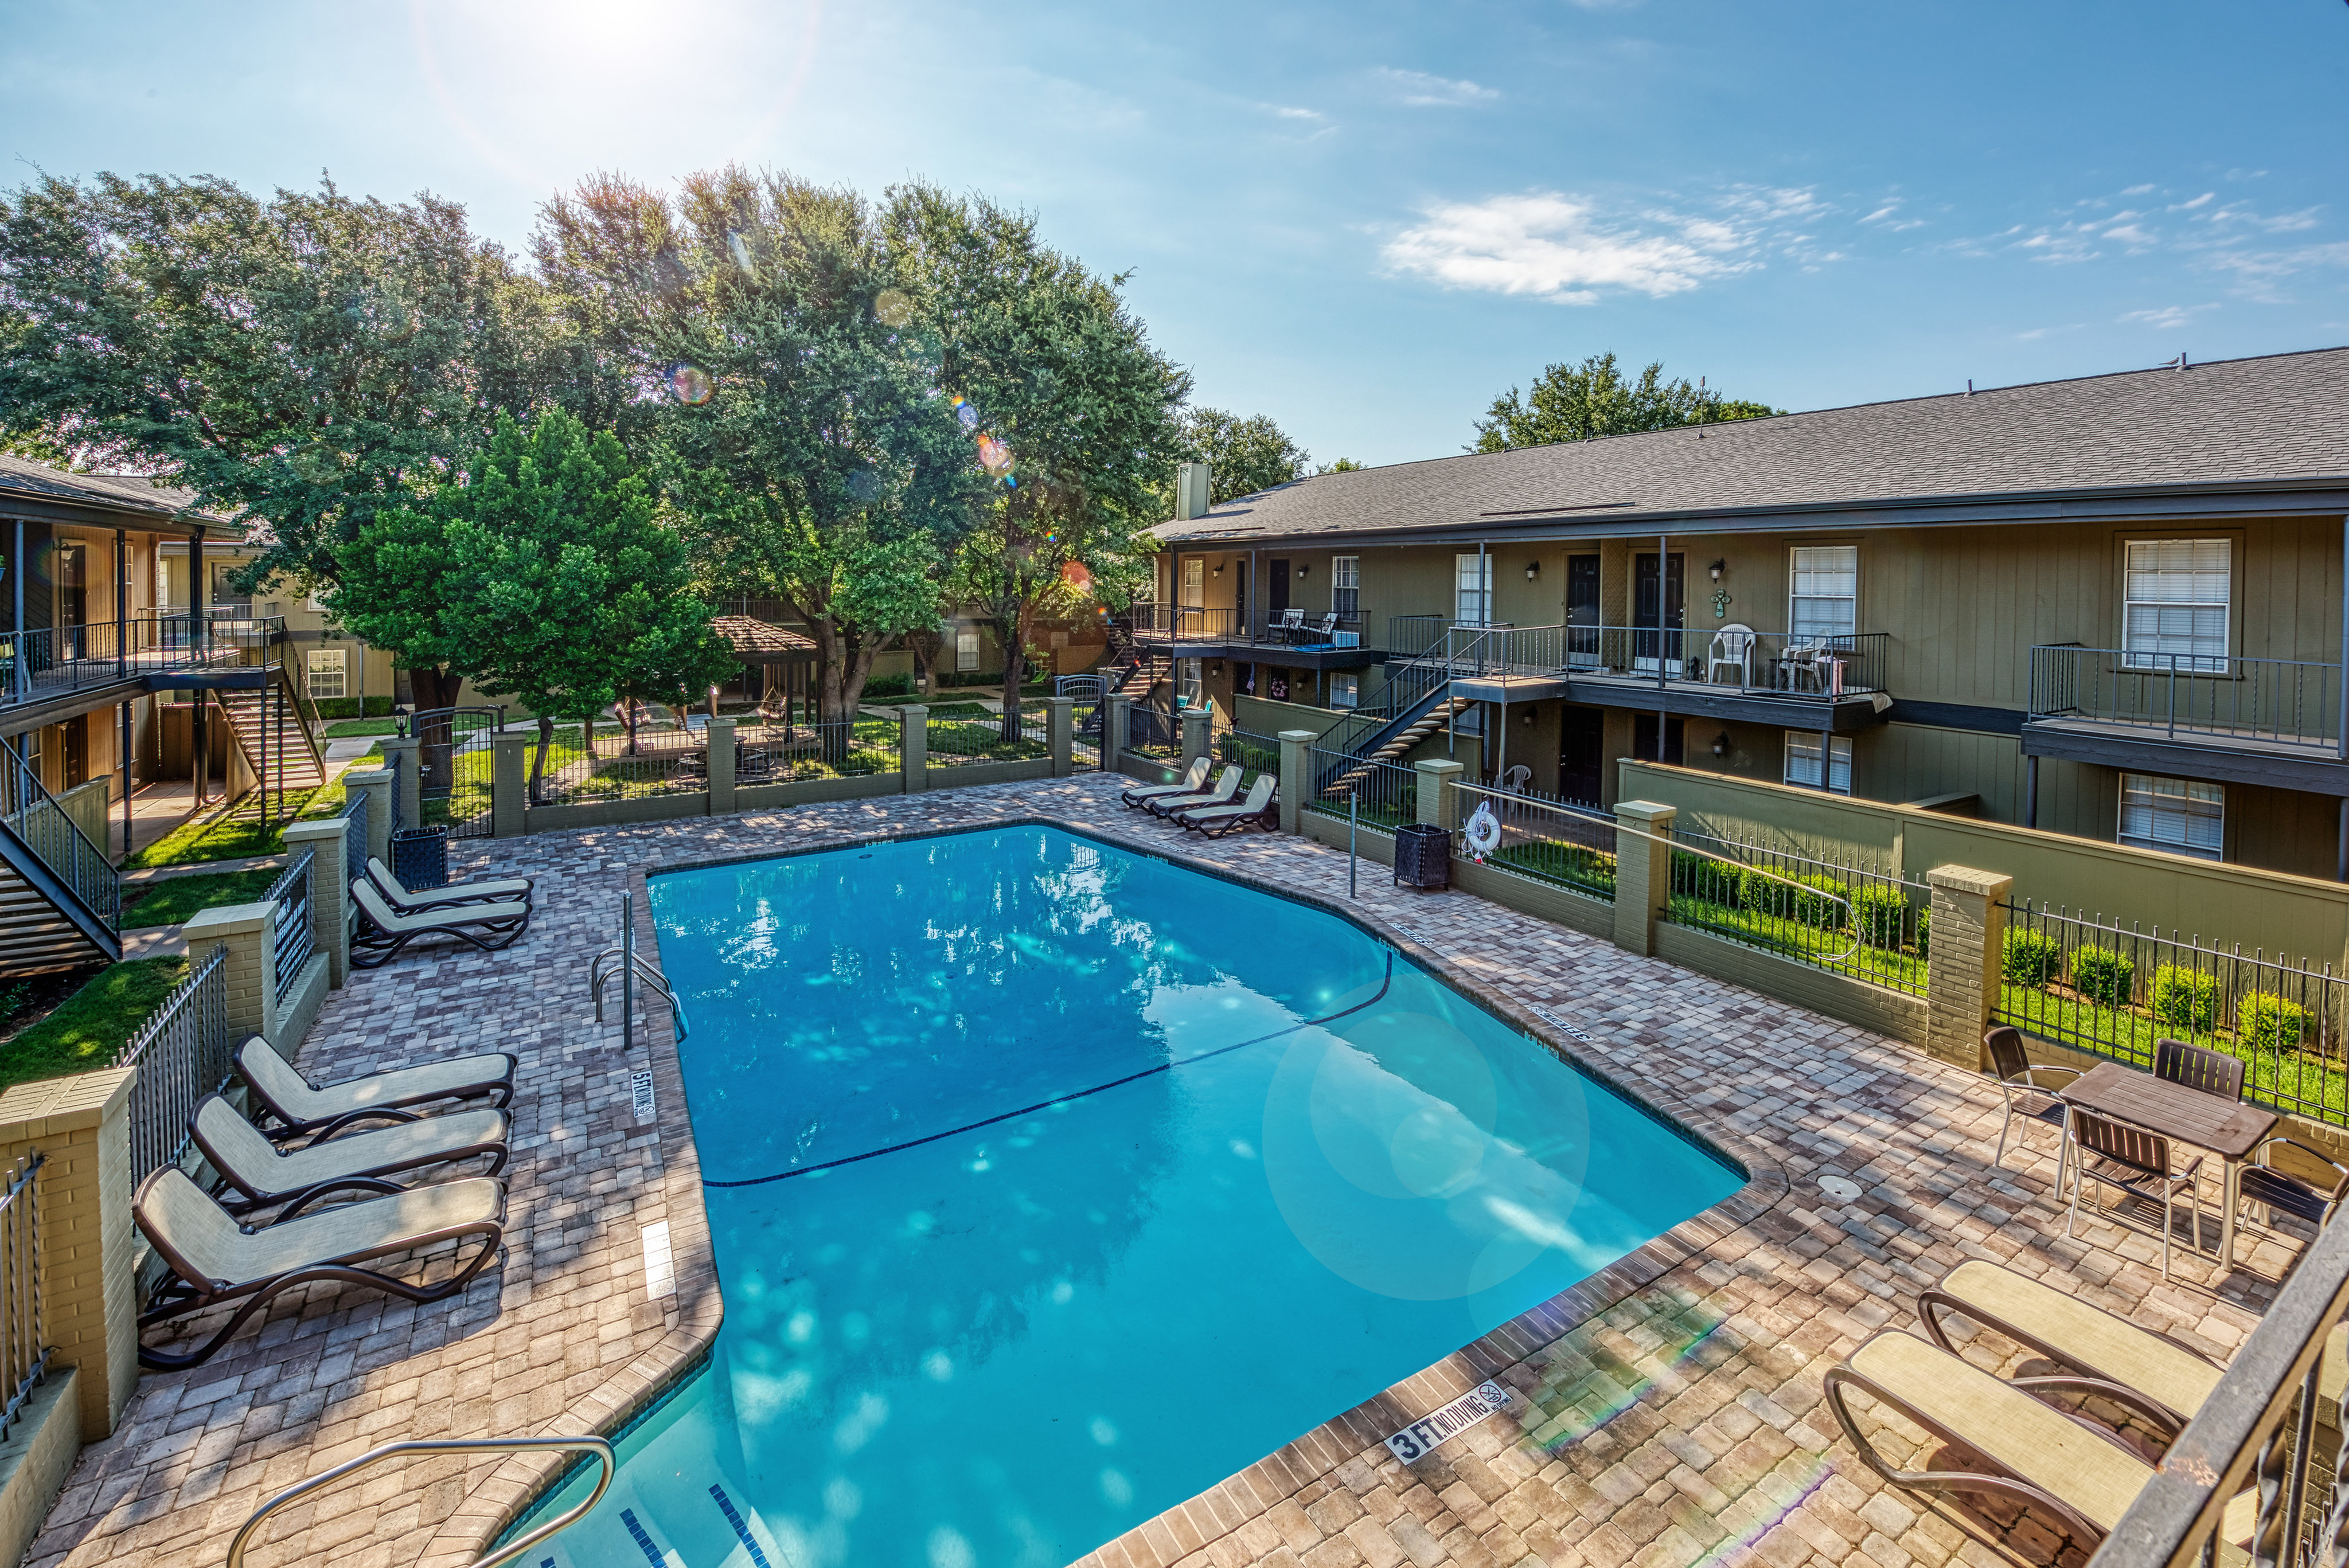 Image of Swimming Pool for Savannah Oaks Apartments